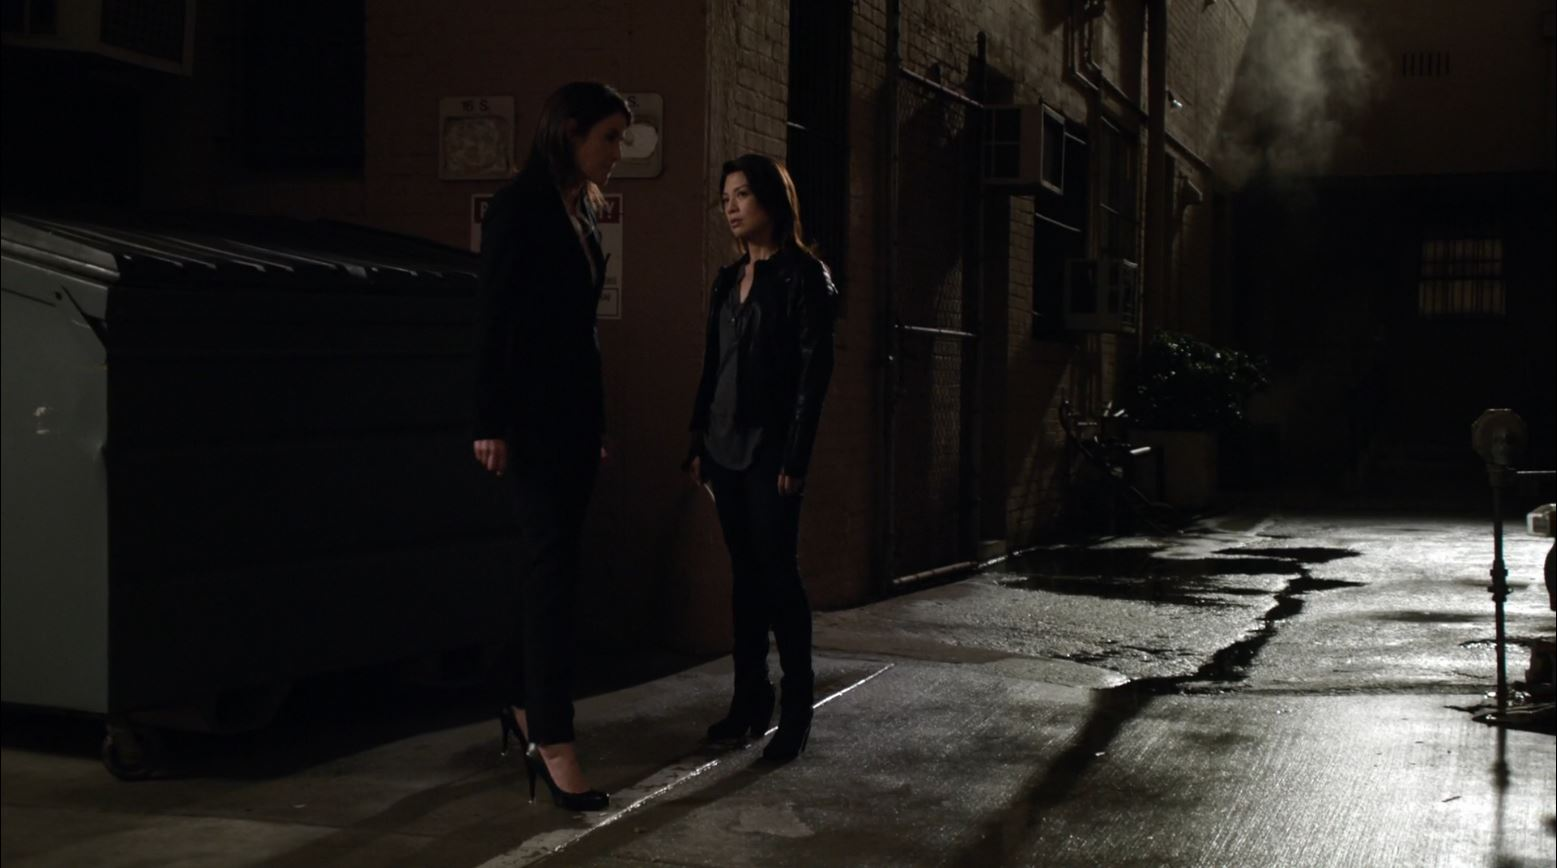 Agents of SHIELD S1Ep20 Nothing Personal - Maria Hill (Cobie Smulders) and Melinda May (Ming Na Wen)